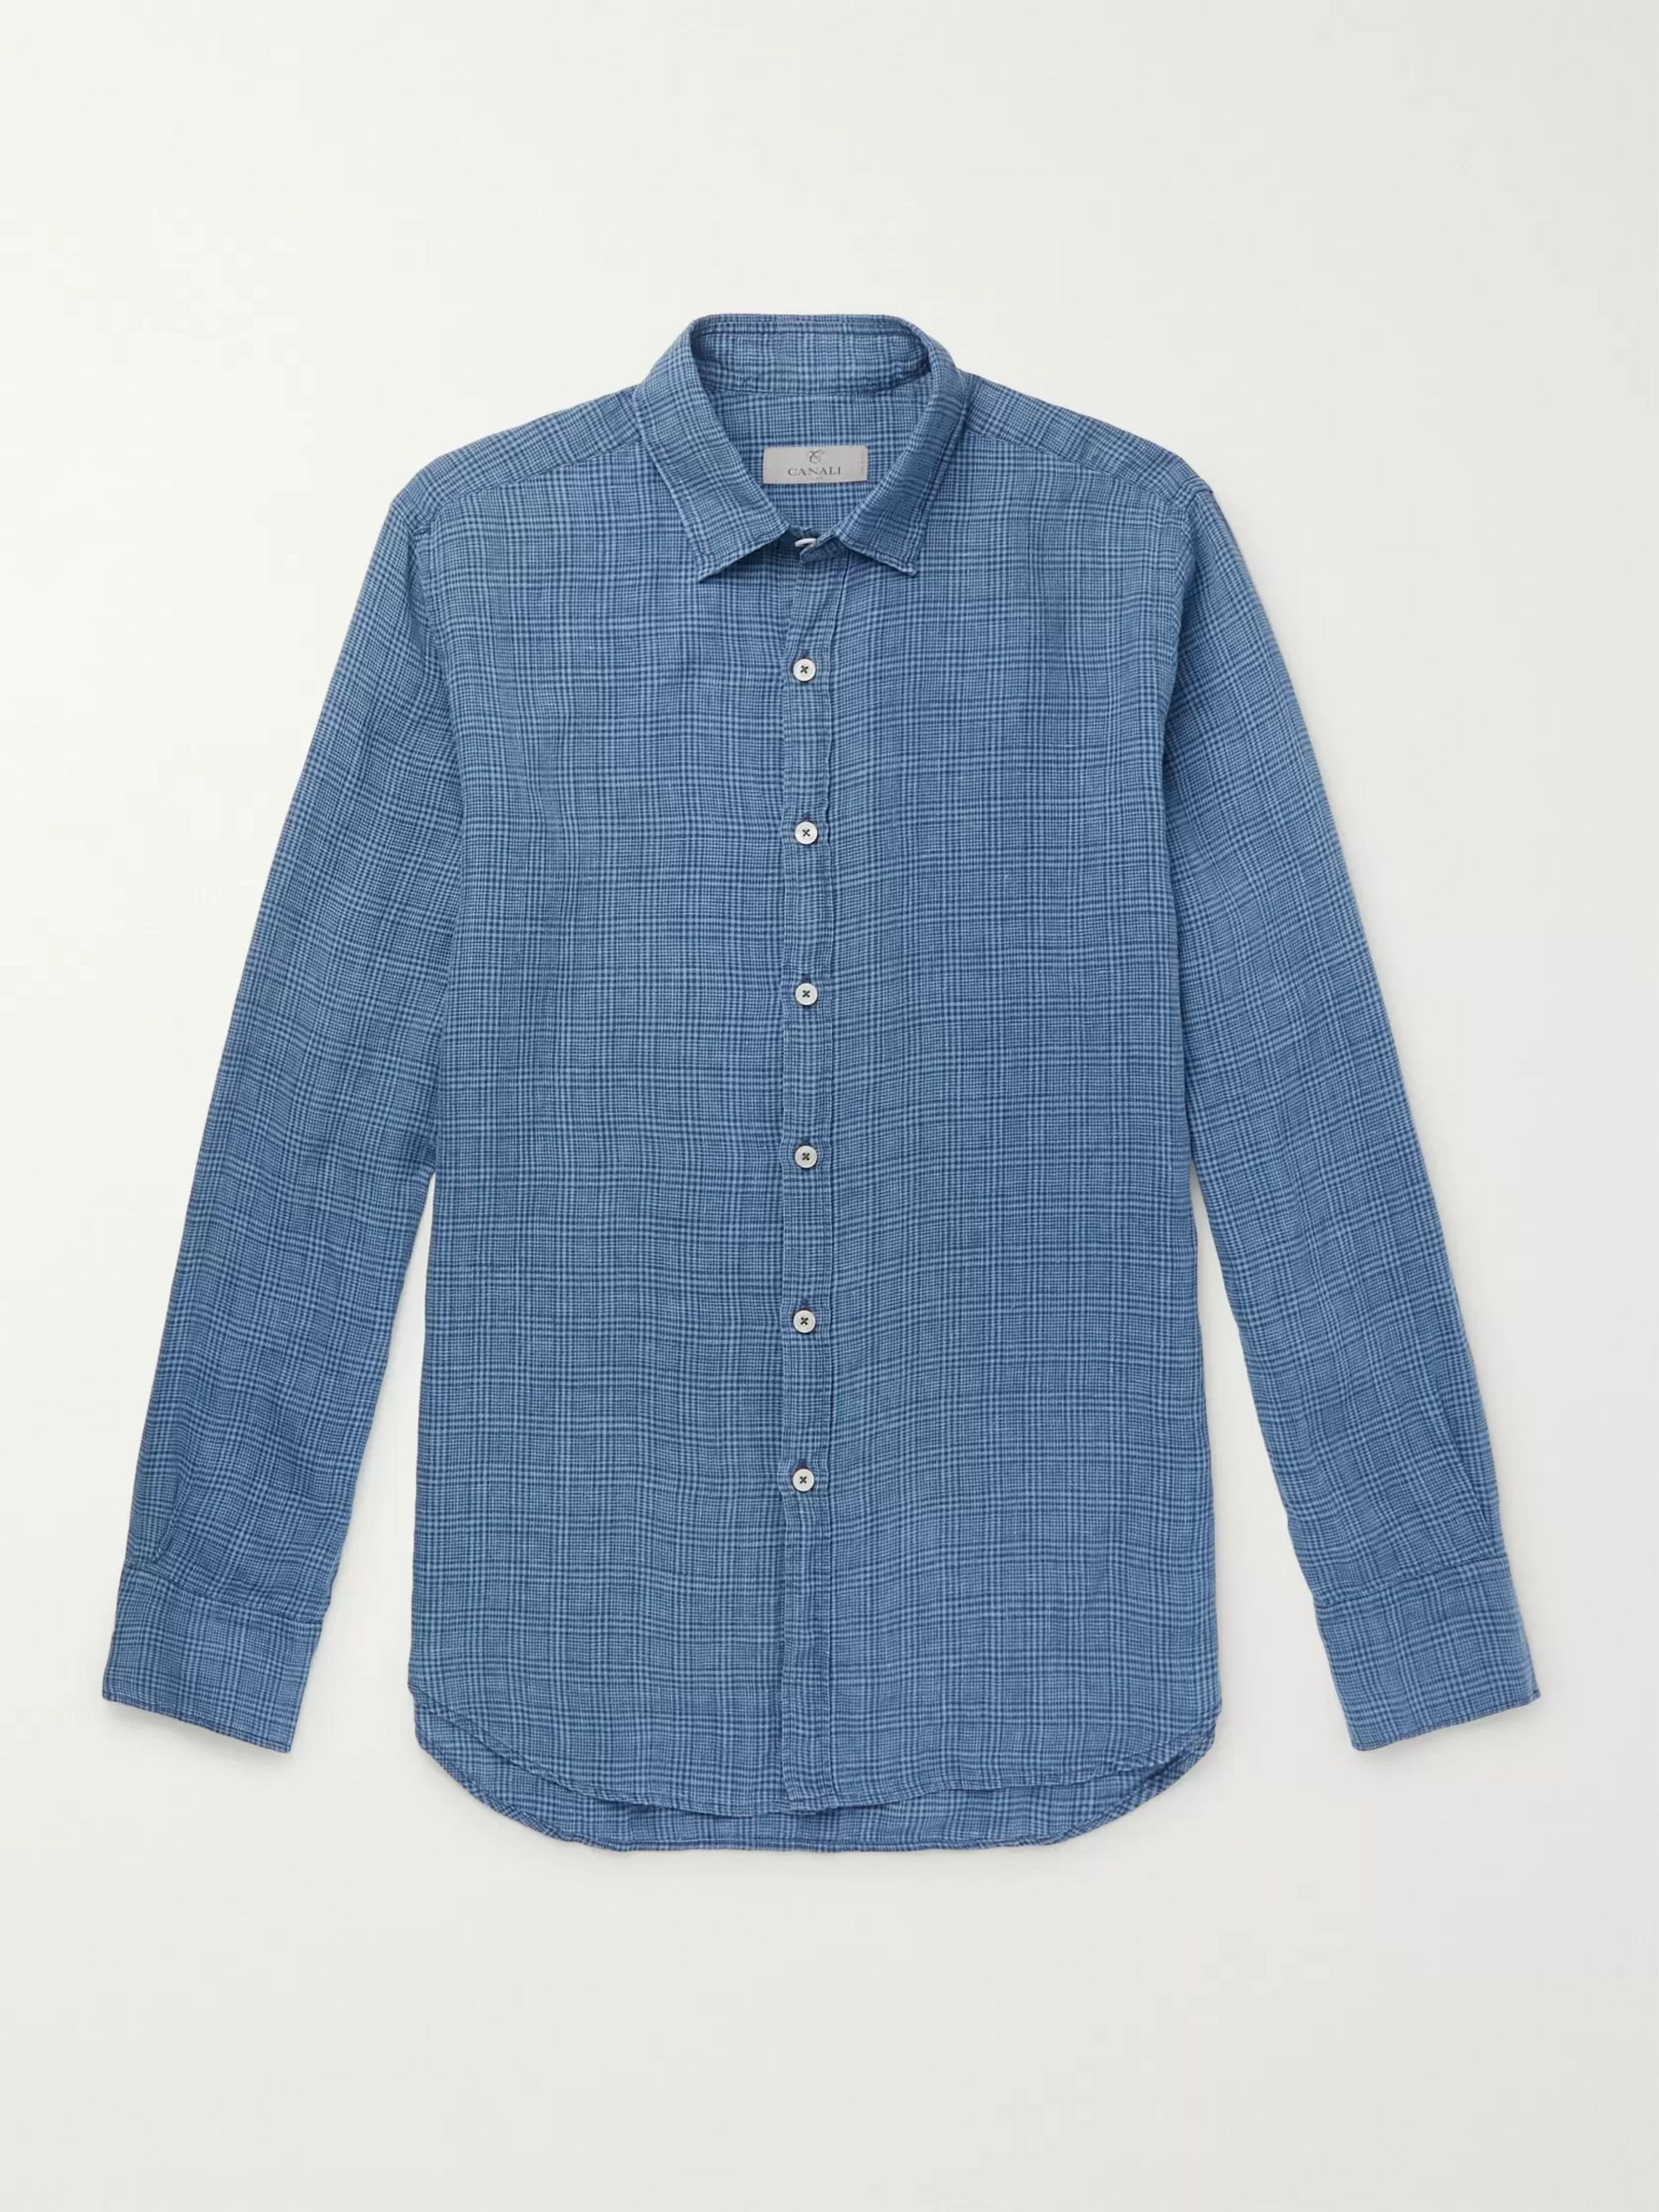 Canali Puppytooth Prince of Wales Checked Linen Shirt